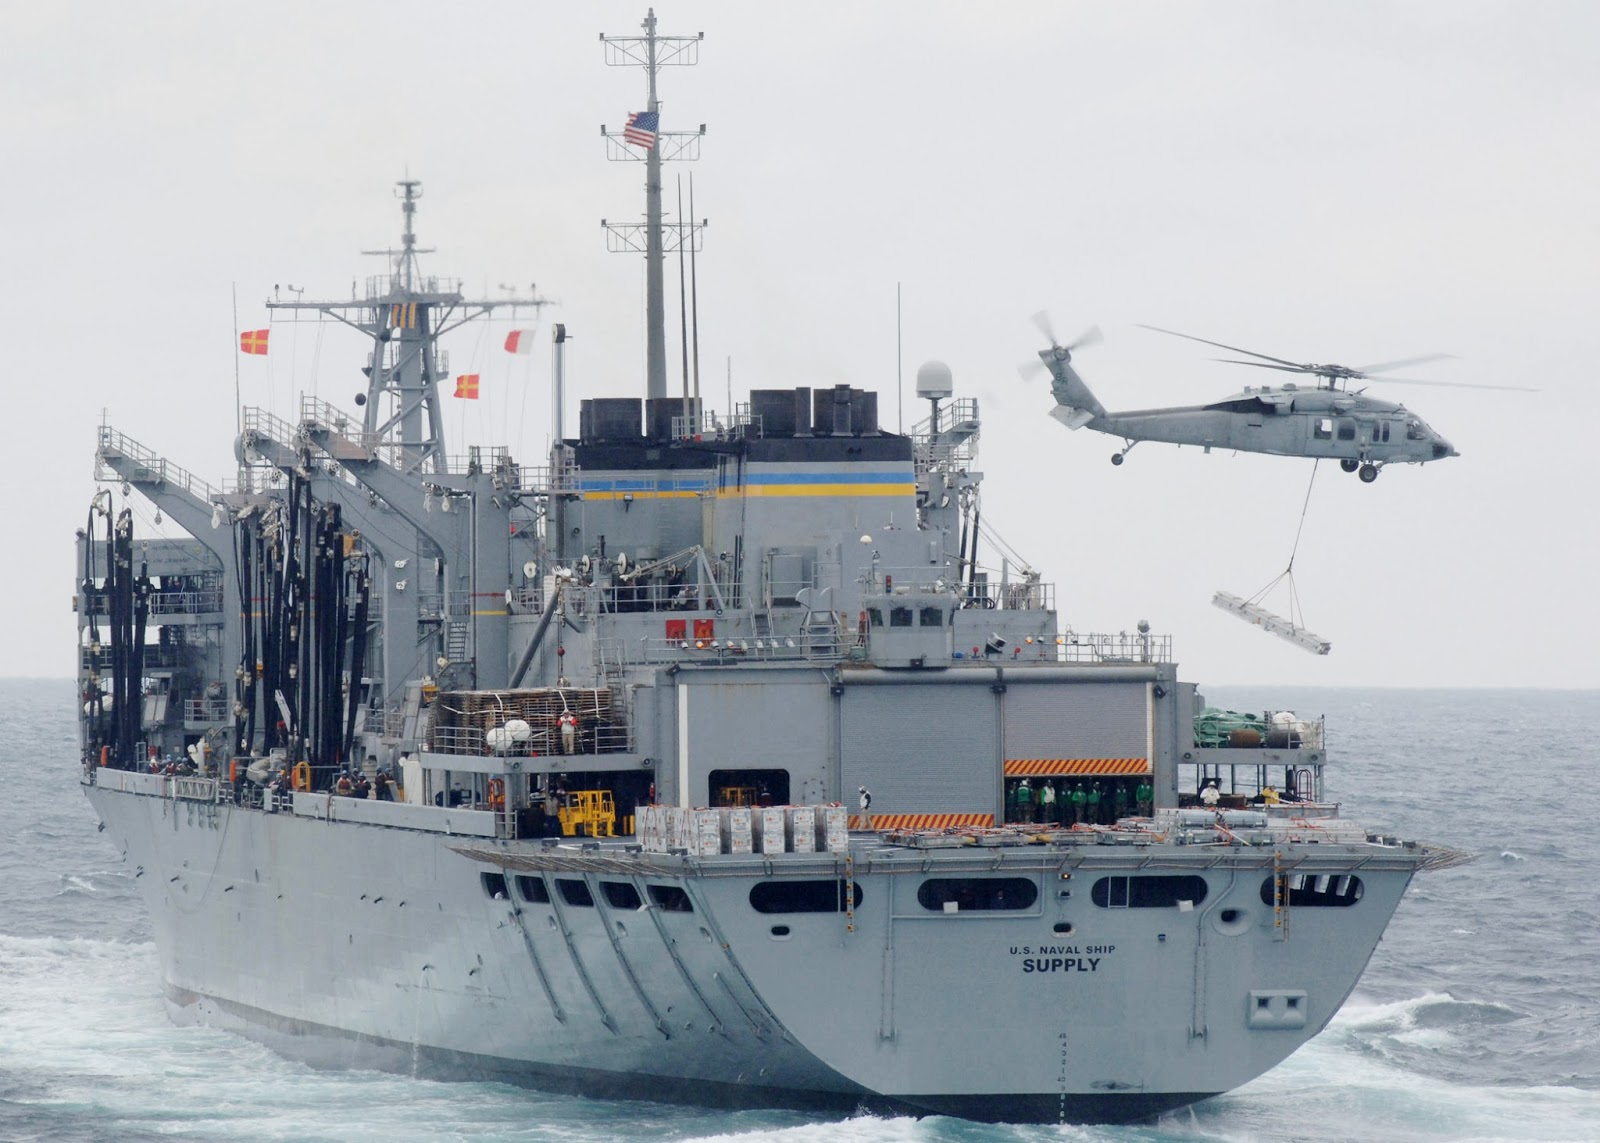 navy ship nope military sealift command note the blue and yellow stripe on the stack